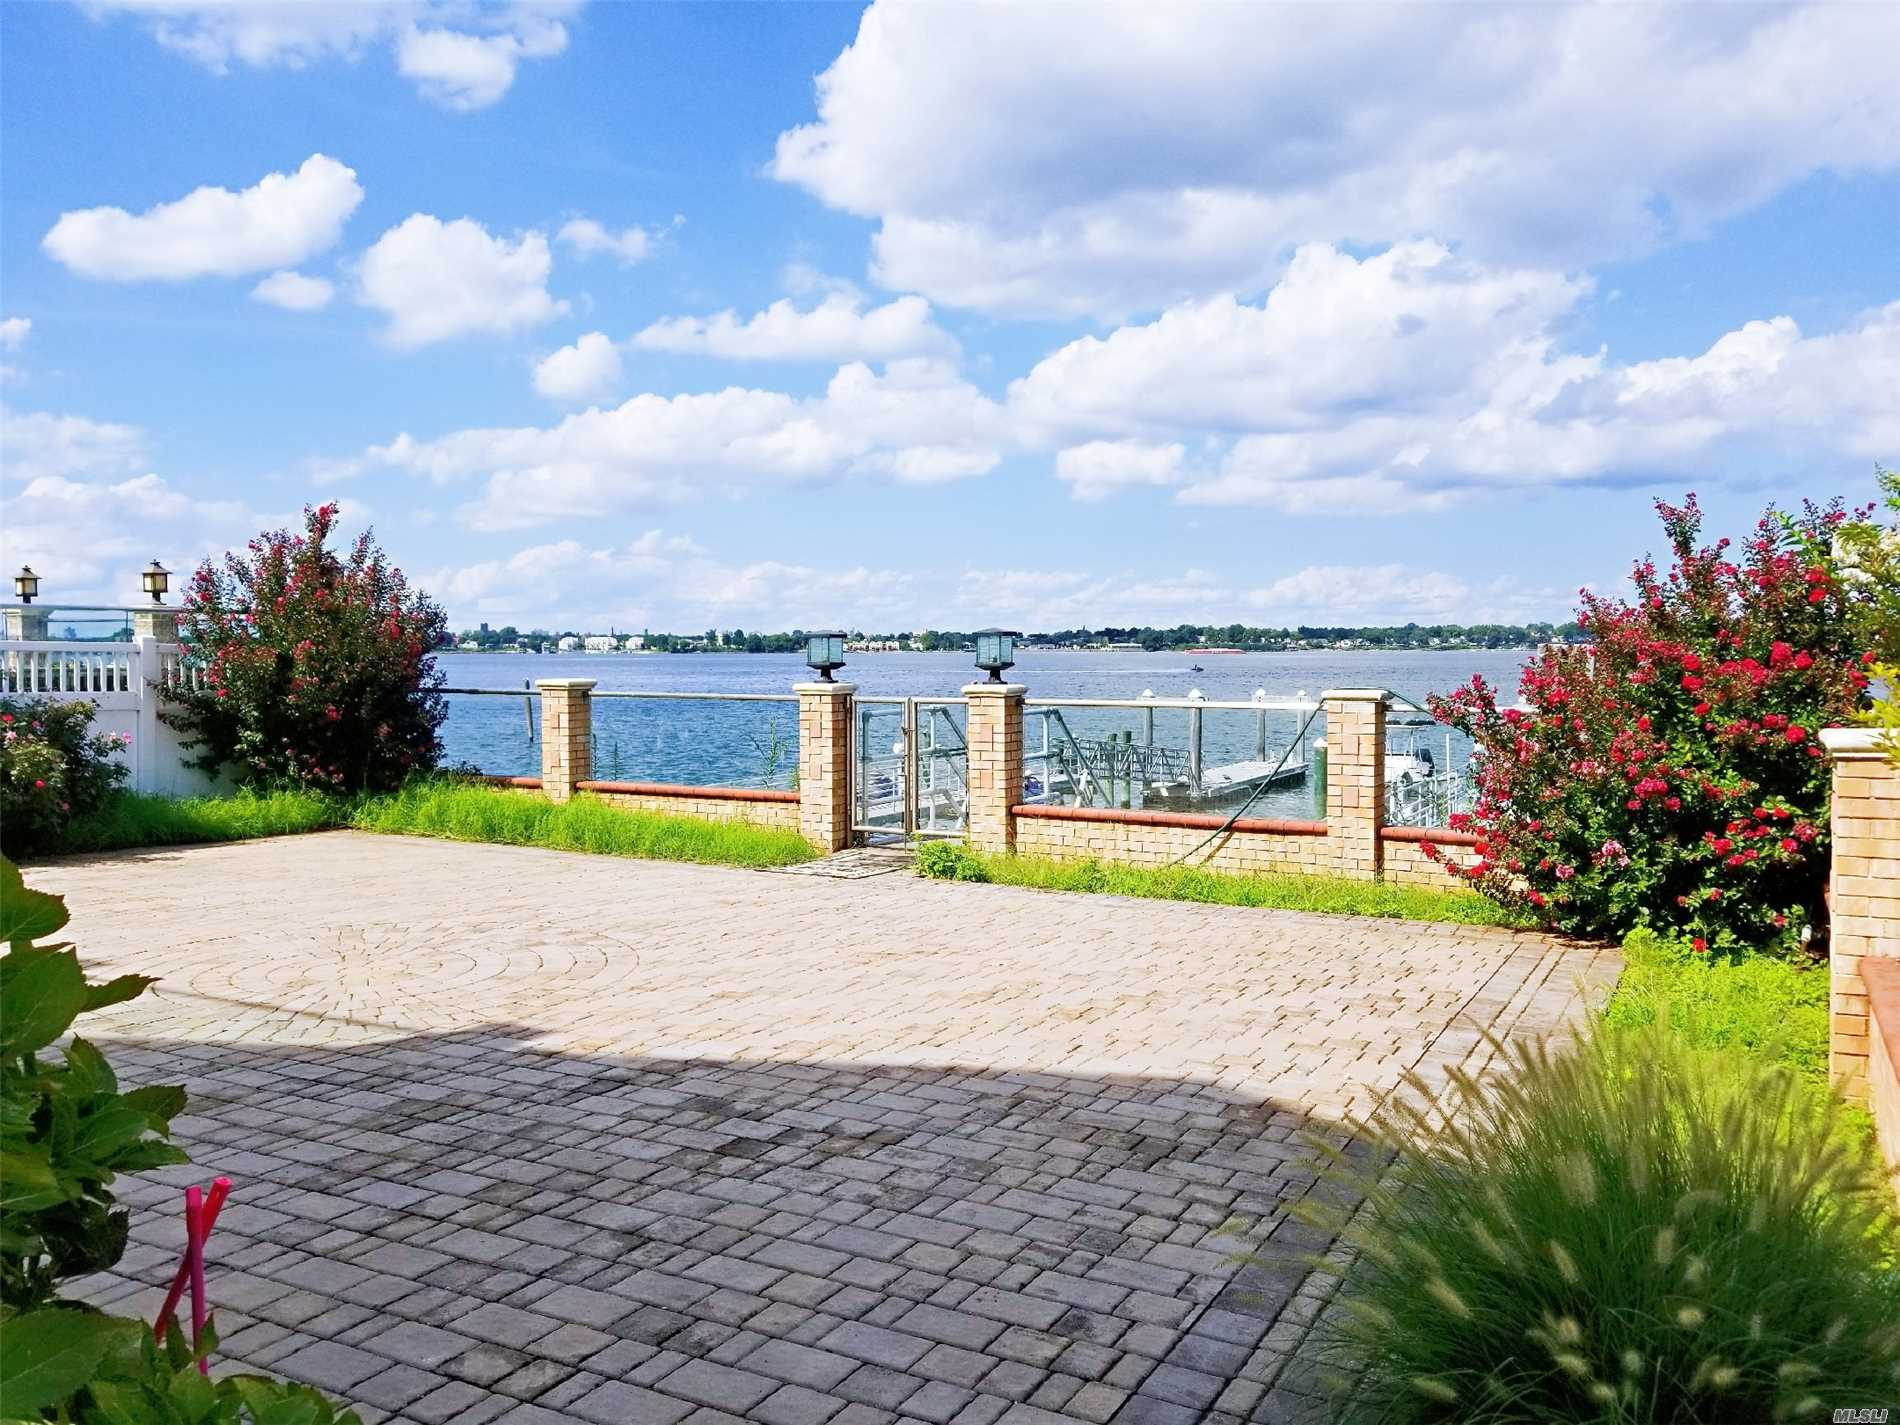 Beautiful Long Island Sound Views With Private Dock+Beach. Custom Built Brick Colonial With 2 Master Suites . 3 Bedrooms, Lg Living Room, Formal Dining Room, Huge Eik, Family Room, 2 Cars Garage, Cac, Cv, 3000+Sq.Ft Living Space. 120 Ft Dock With Boat Lift And 2 Jetski Lifts. Private Beach. Located In Cul-De-Sac.